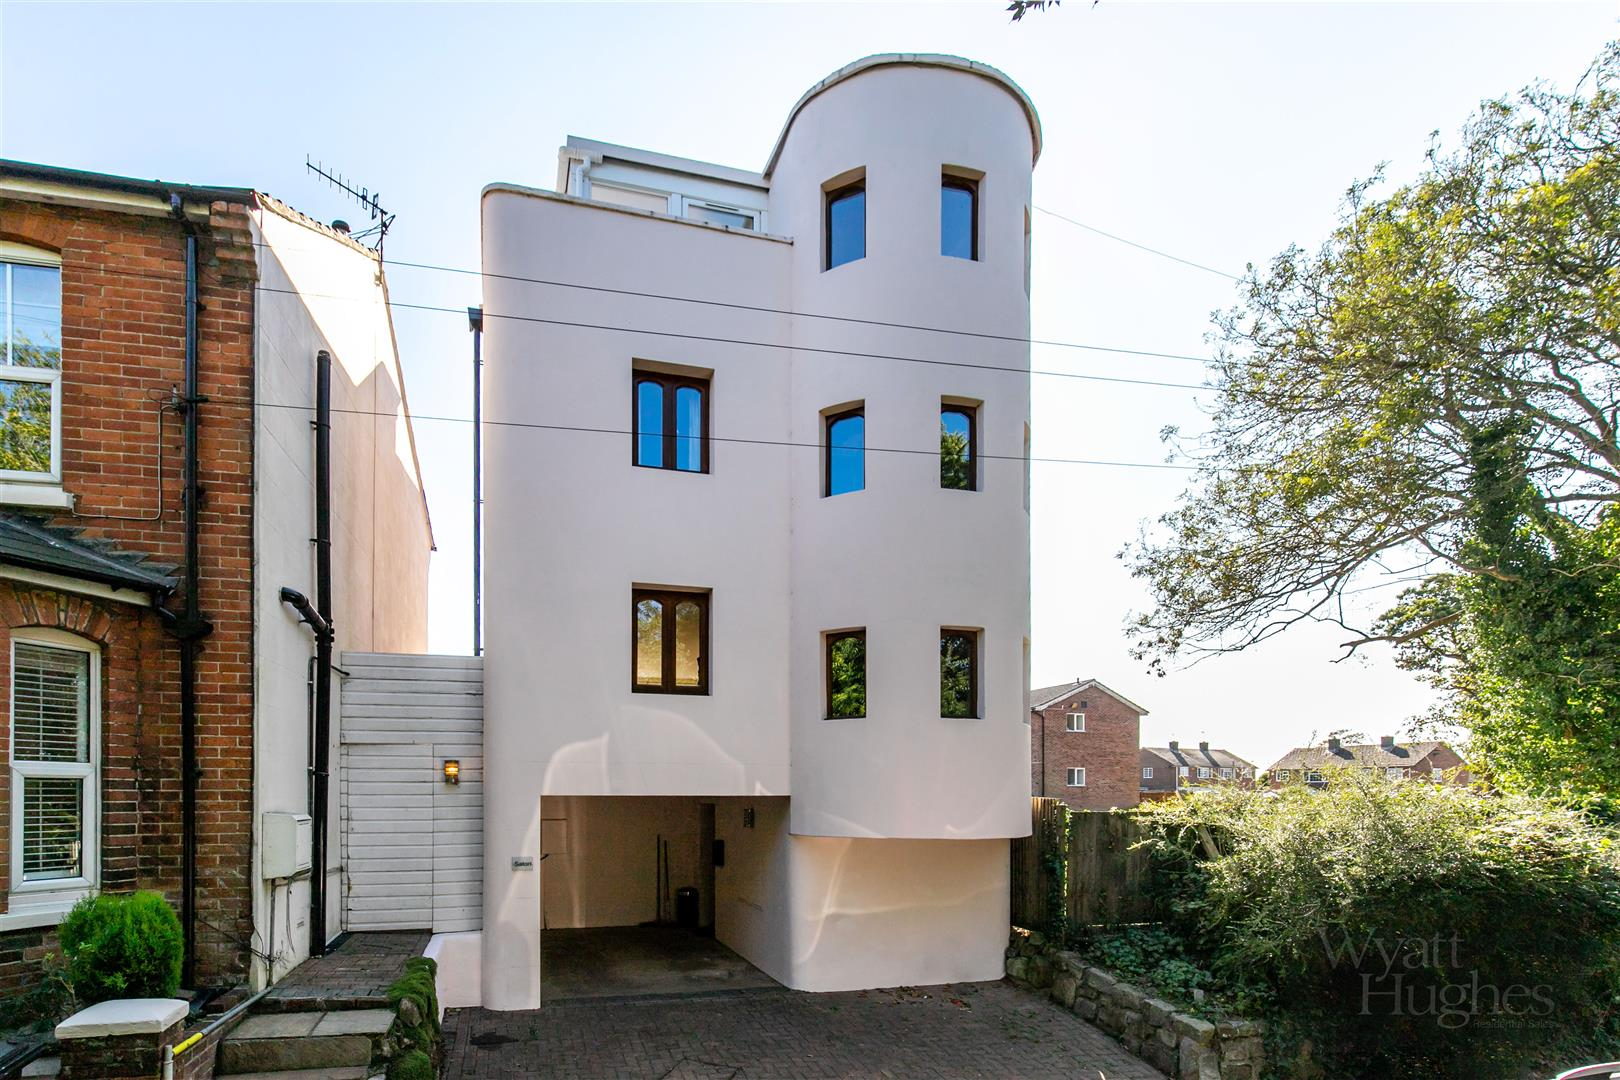 2 bed house for sale in Gillsmans Hill, St. Leonards-On-Sea  - Property Image 1